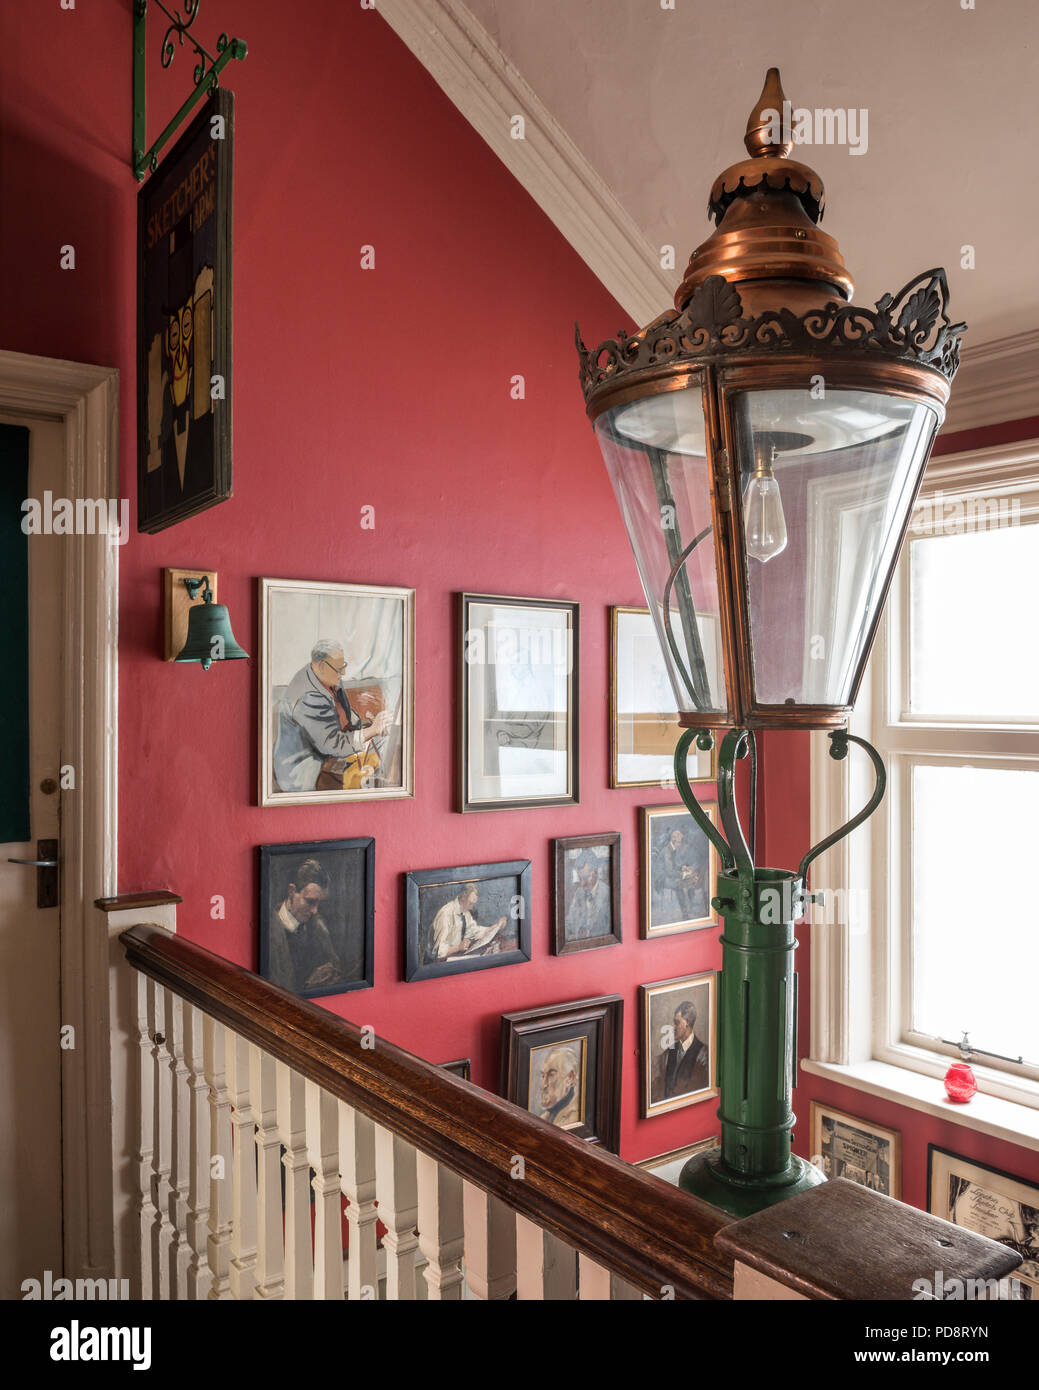 Top of entrance hall staircase at the London sketch club. In the foreground is an old street lamp and the walls are adorned with assorted portraits - Stock Image